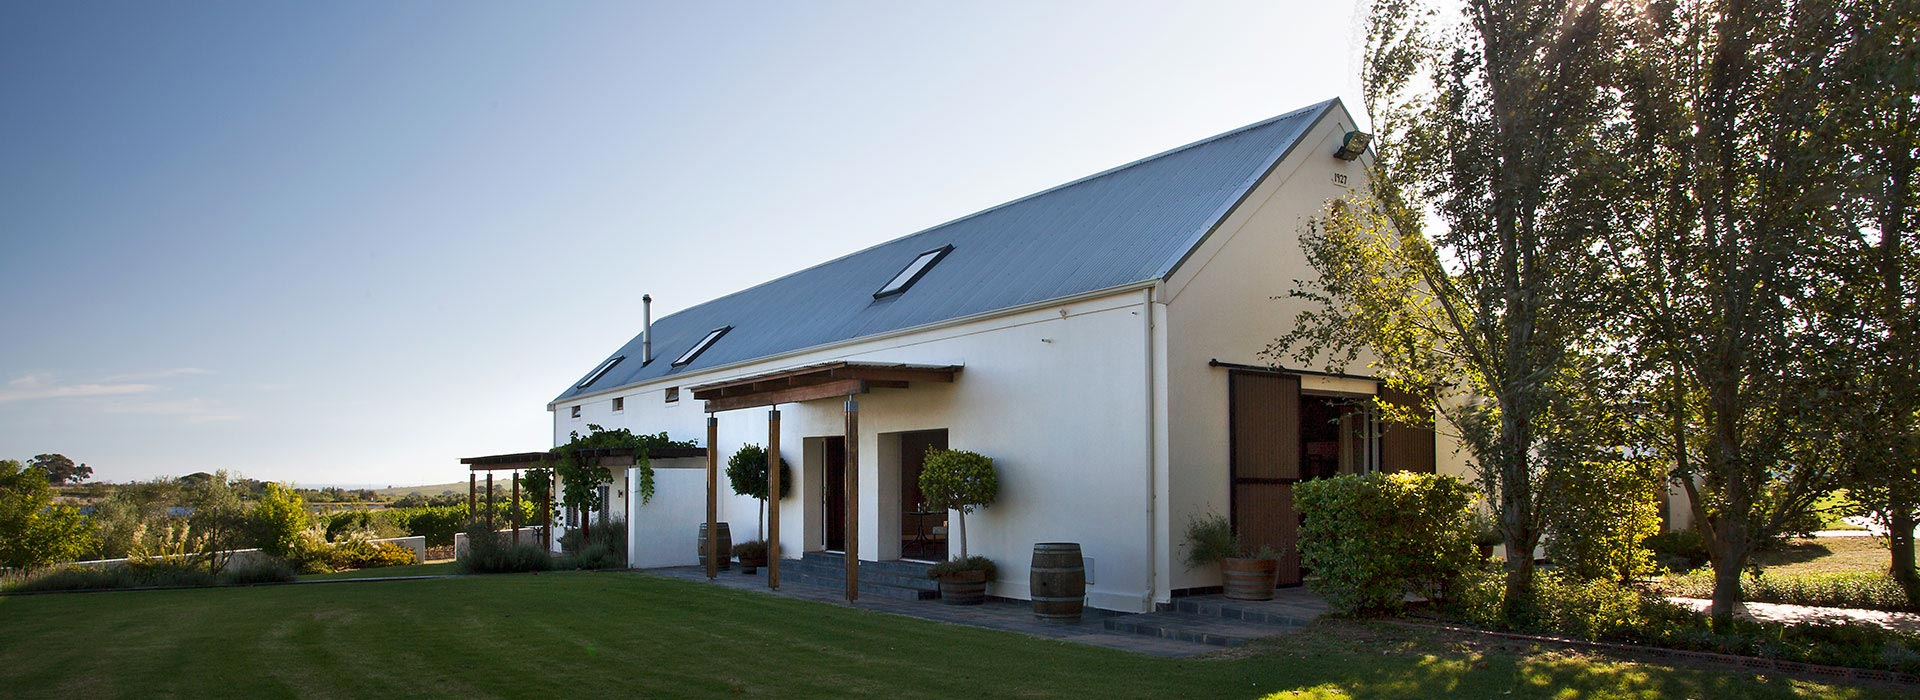 The Barn Conference & Function Venue